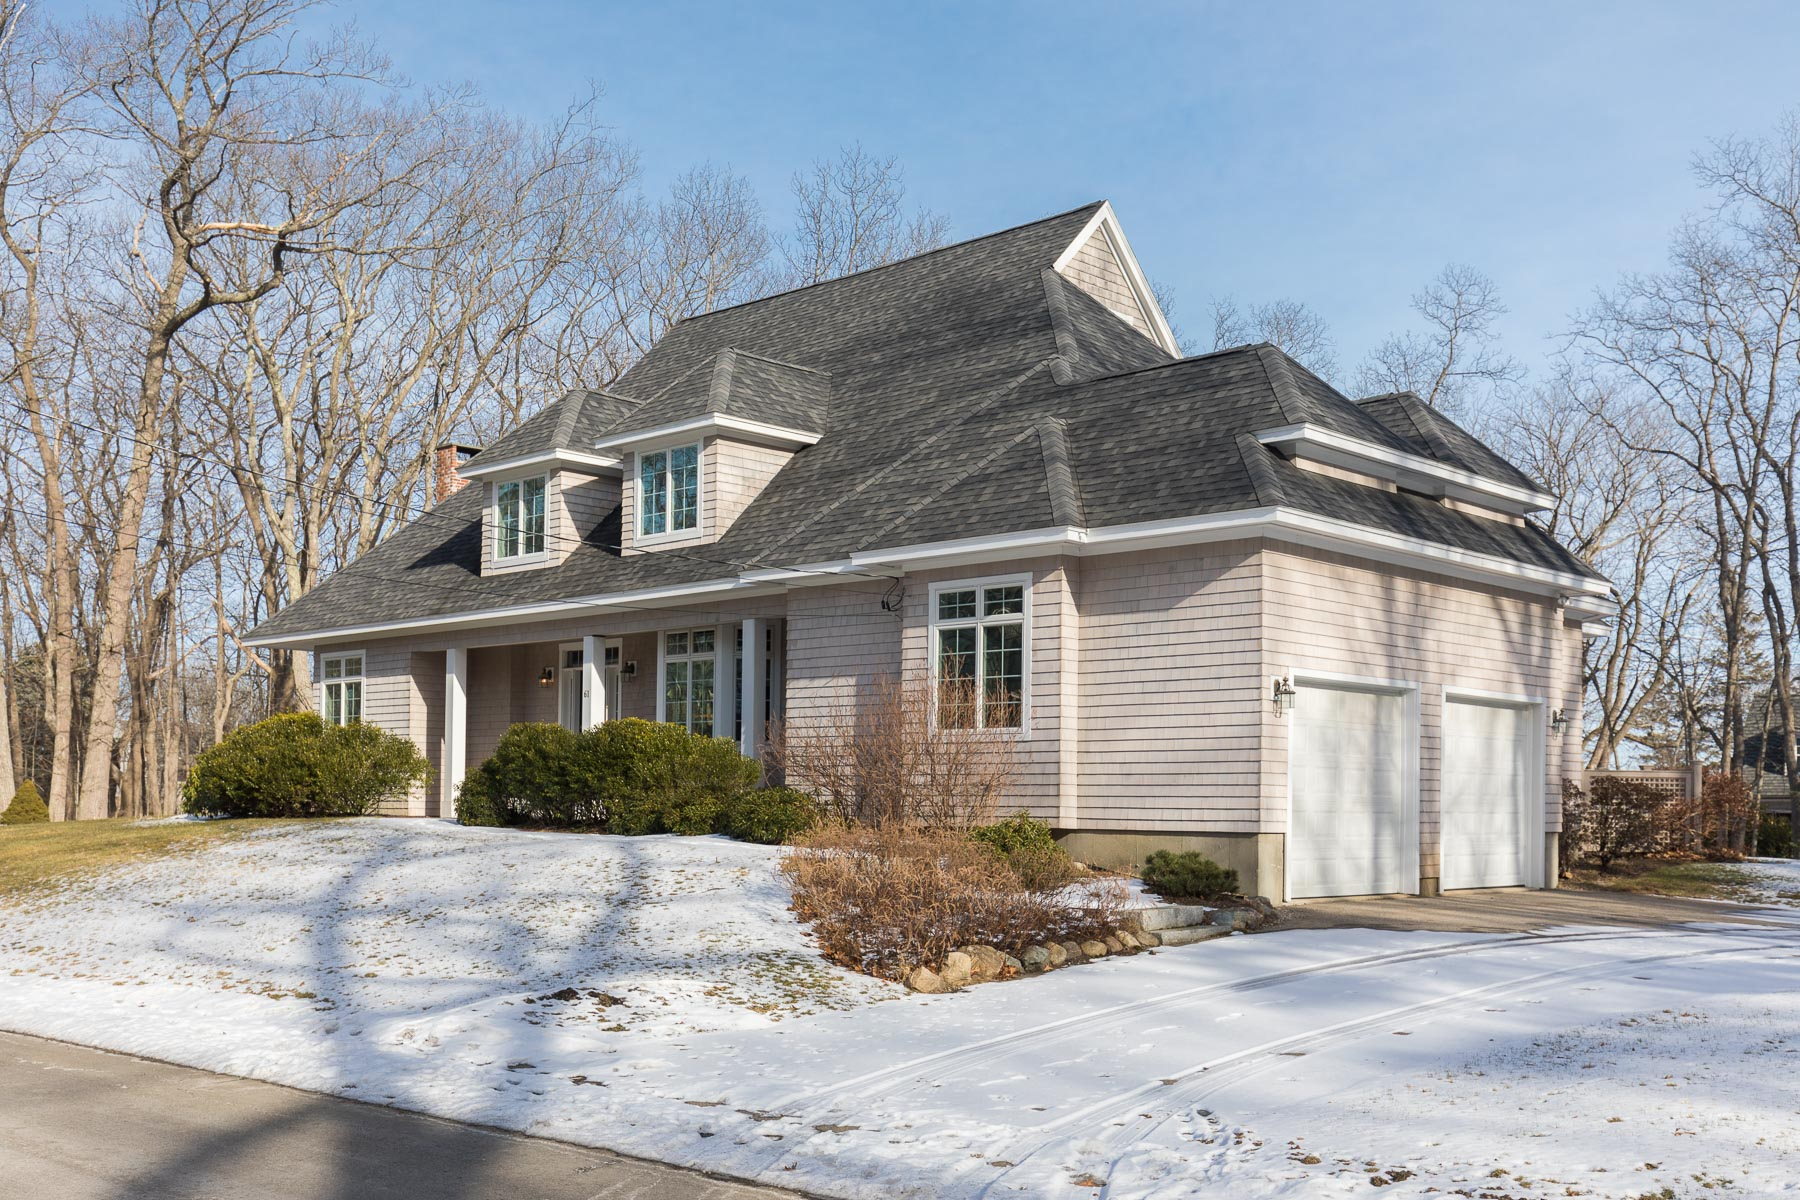 Additional photo for property listing at 61 Norwood Farms Road  York, Maine 03909 United States